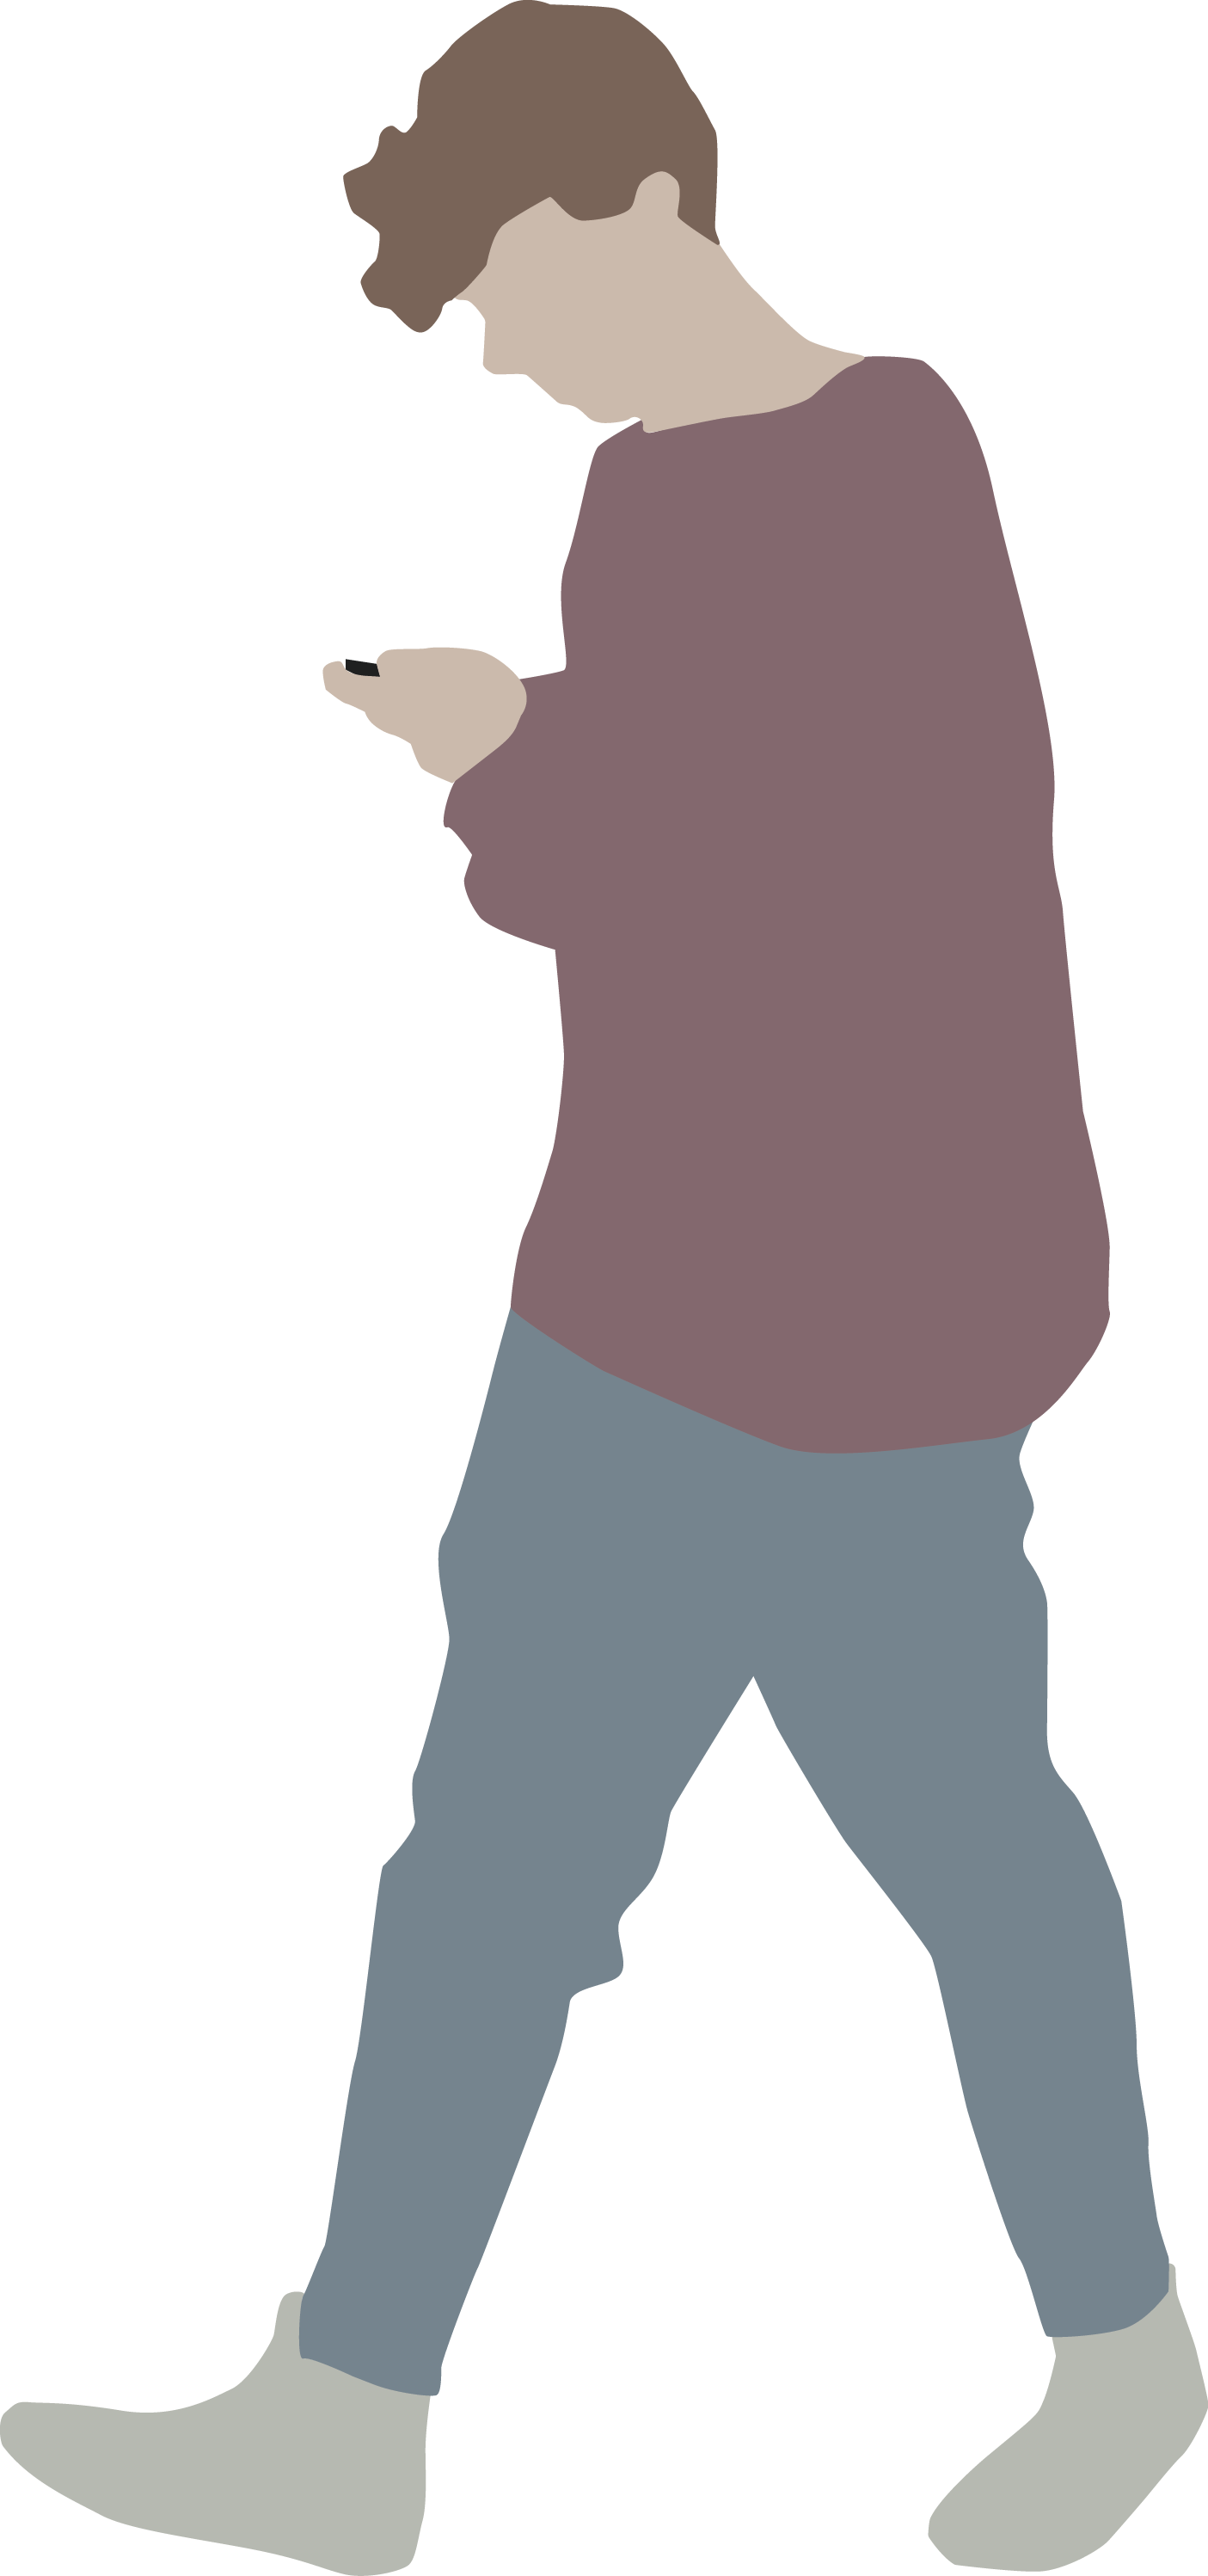 Architect vector silhouette. Undefined graphic pinterest people clip art freeuse library